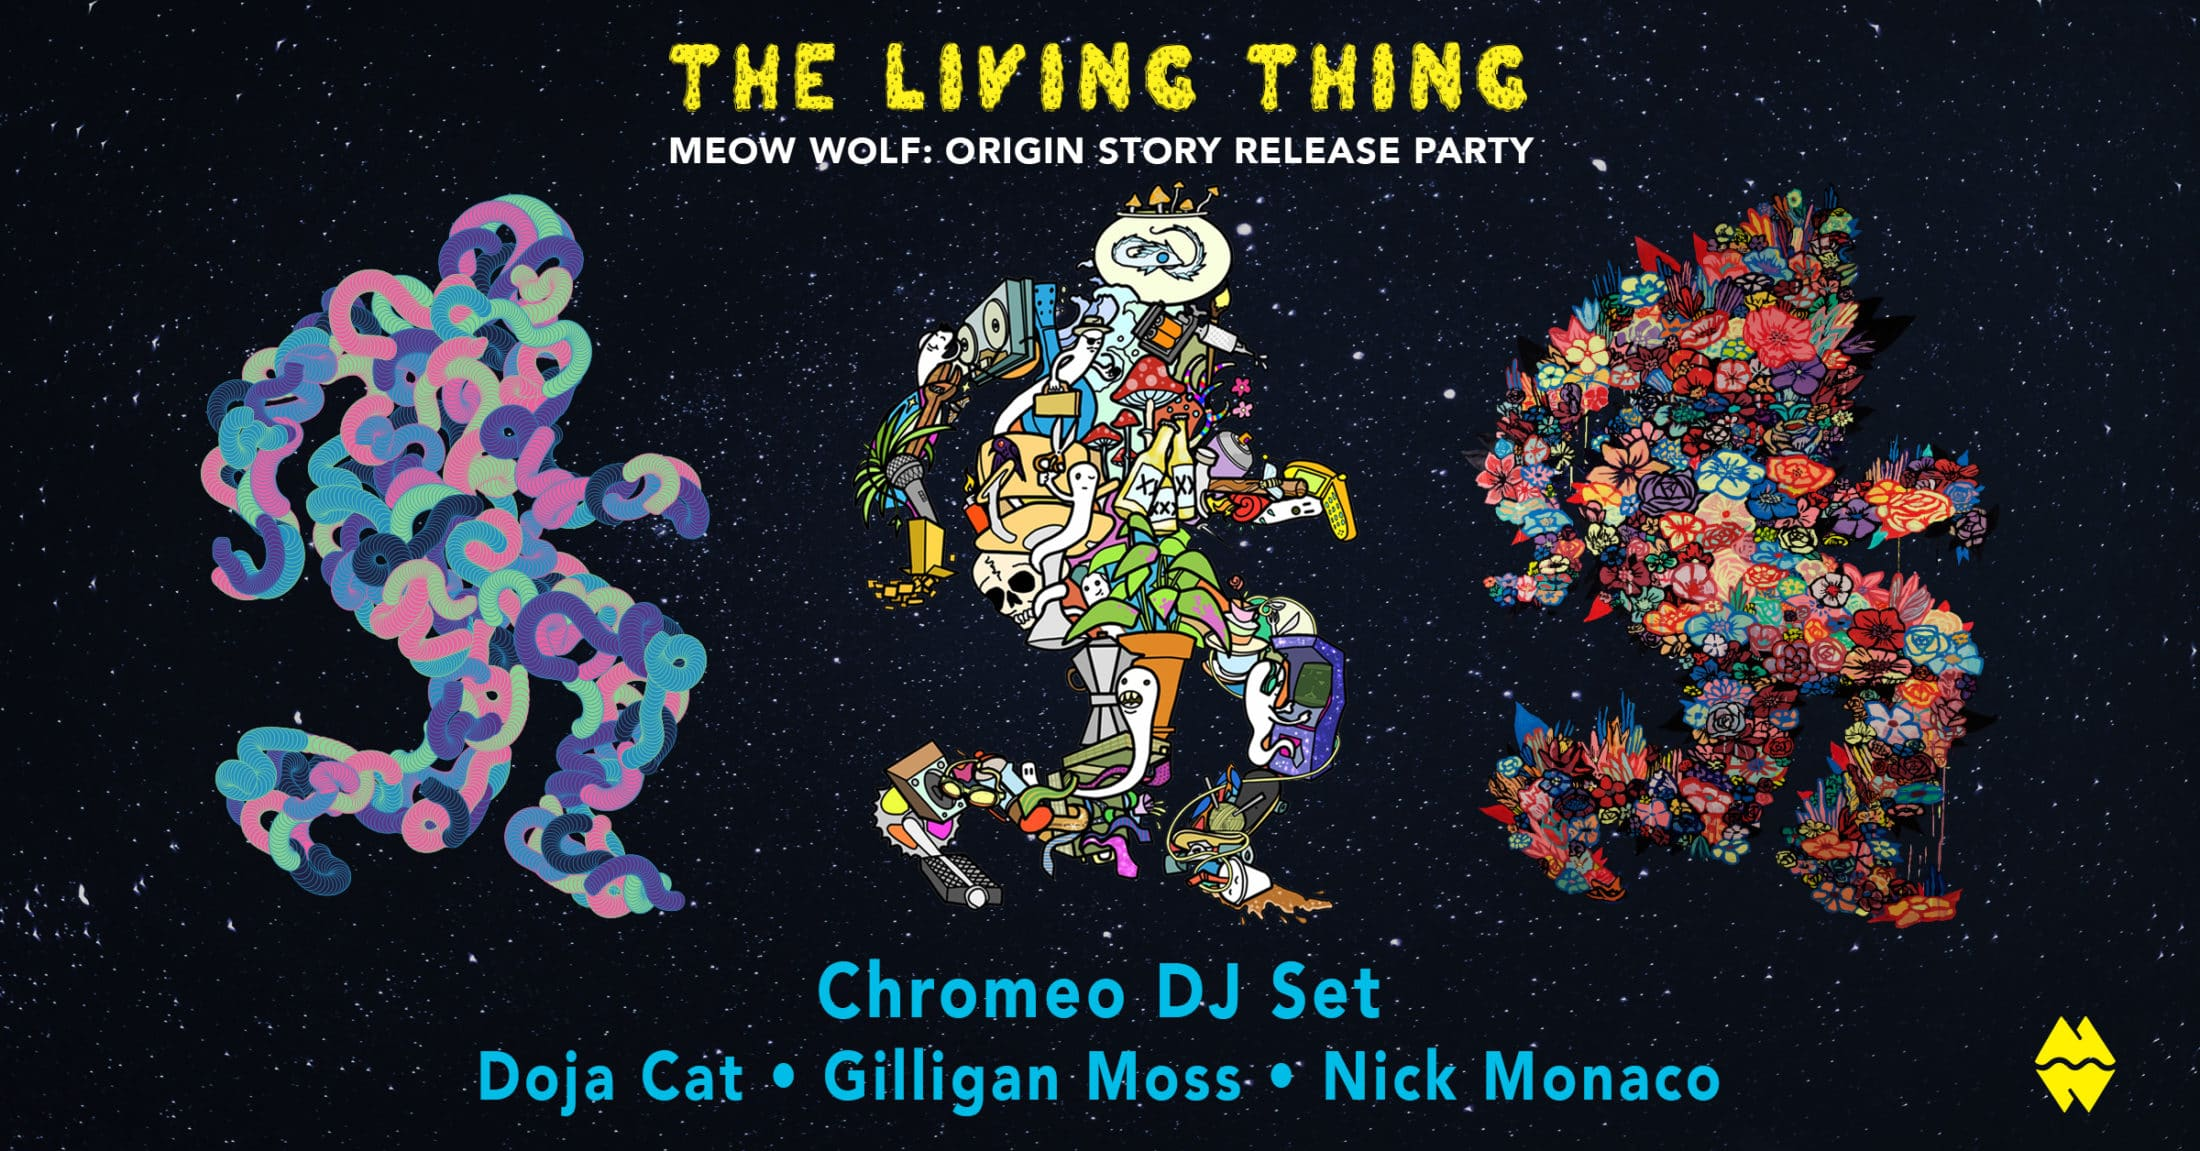 The Living Thing - Meow Wolf: Origin Story Release Party